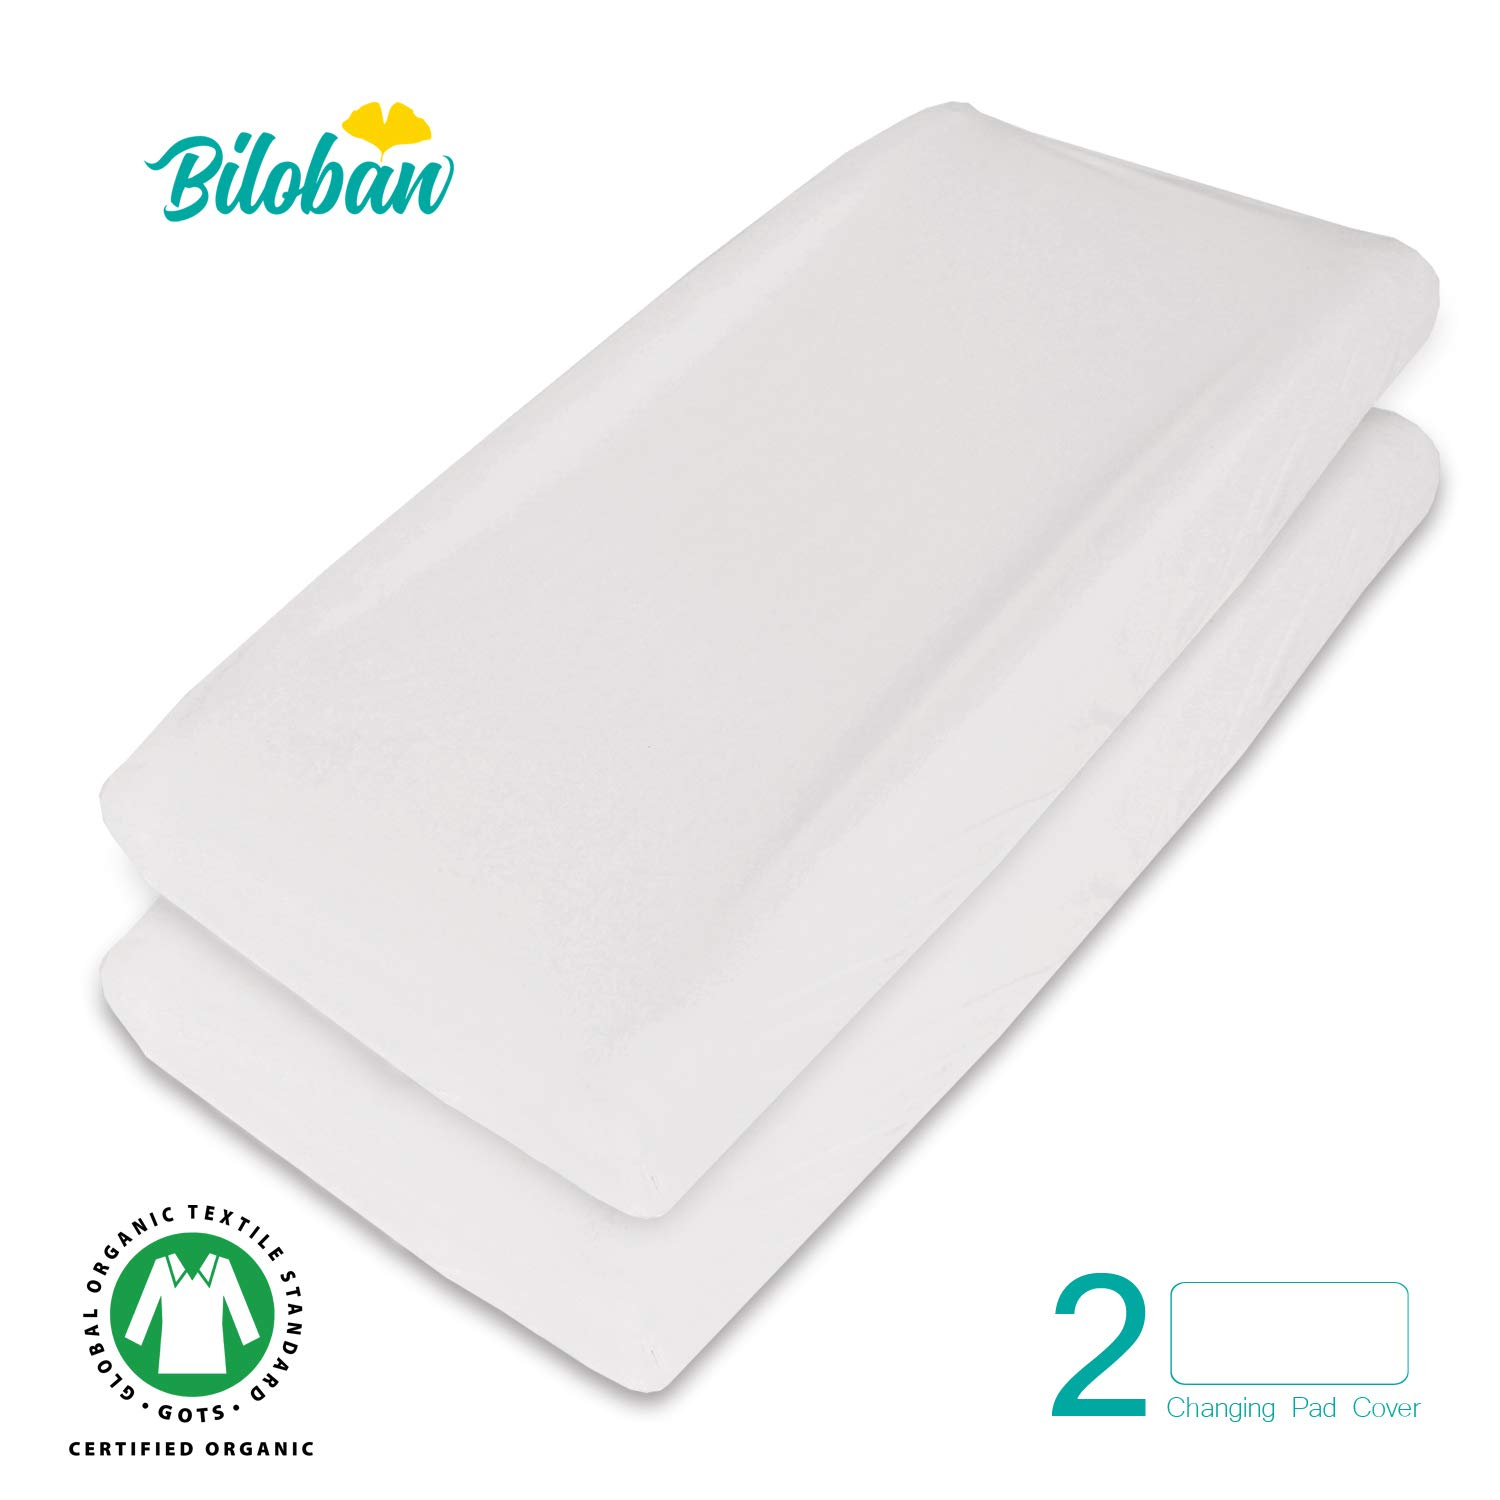 Organic Changing Pad Cover/Change Table Cover Sheets, Waterproof, 100% Organic Cotton, 2 Pack, Cream White by Biloban